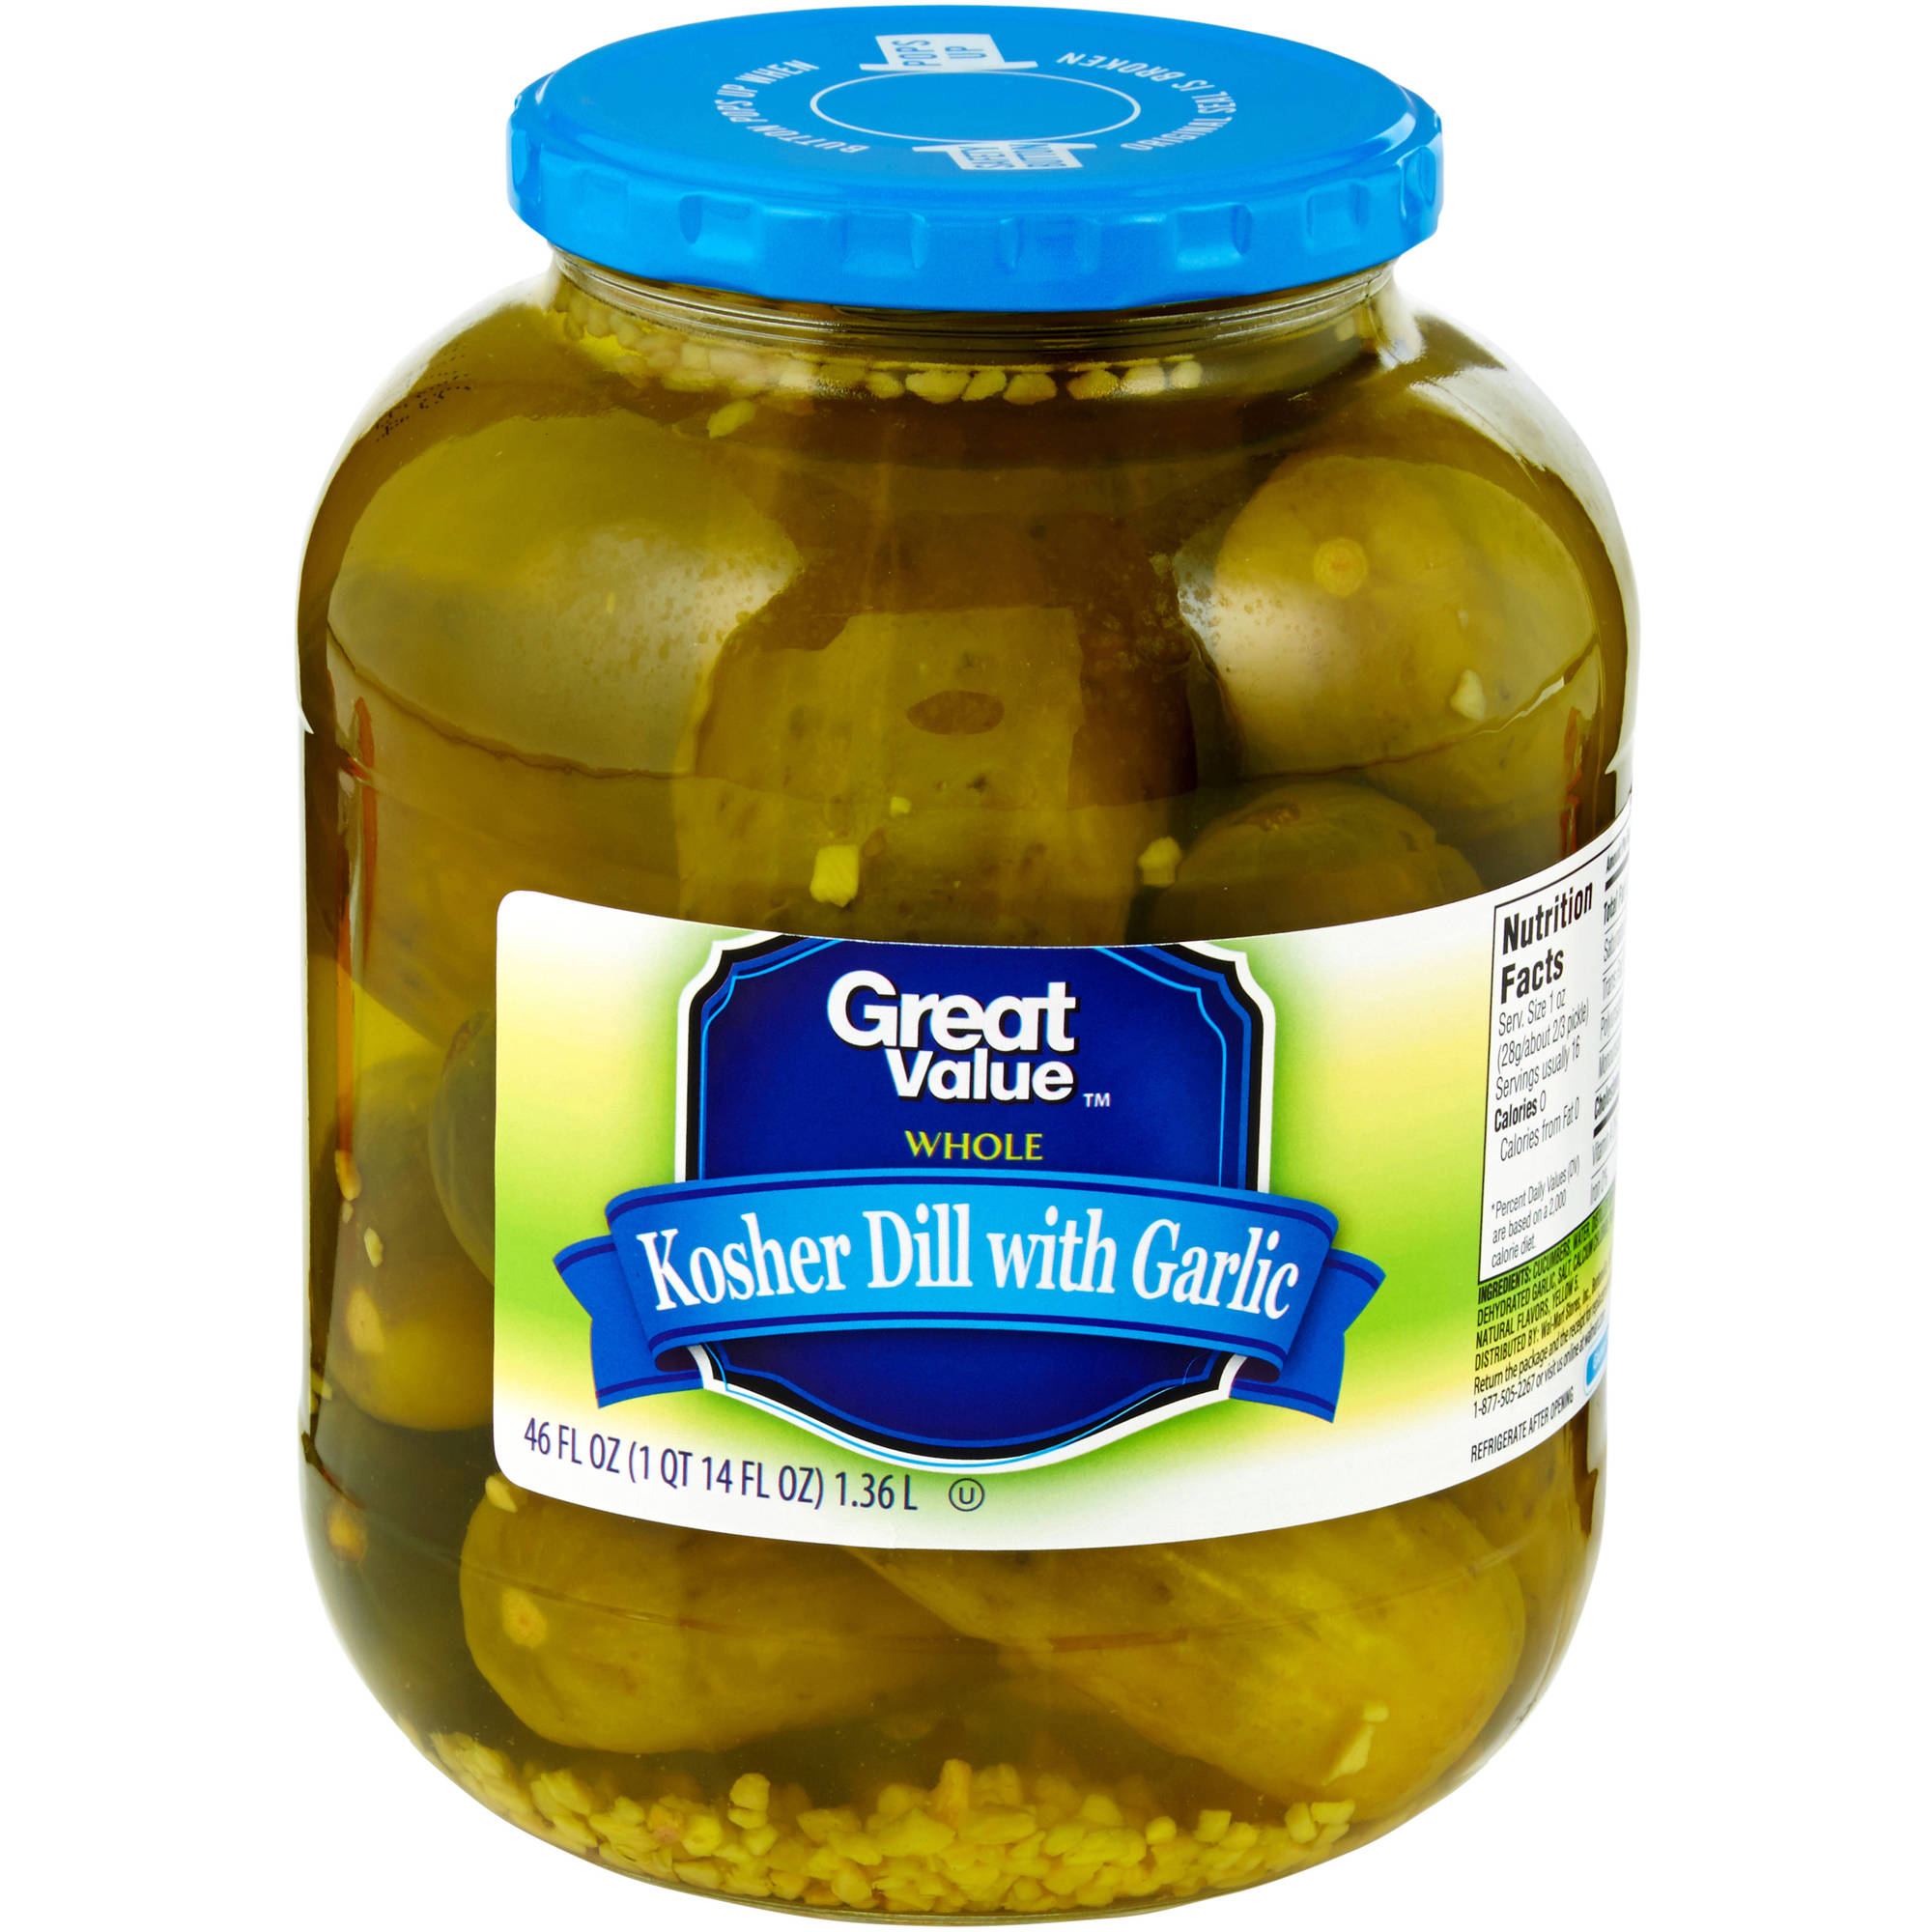 Great Value: Kosher Whole Dill Pickles, 46 Fl Oz